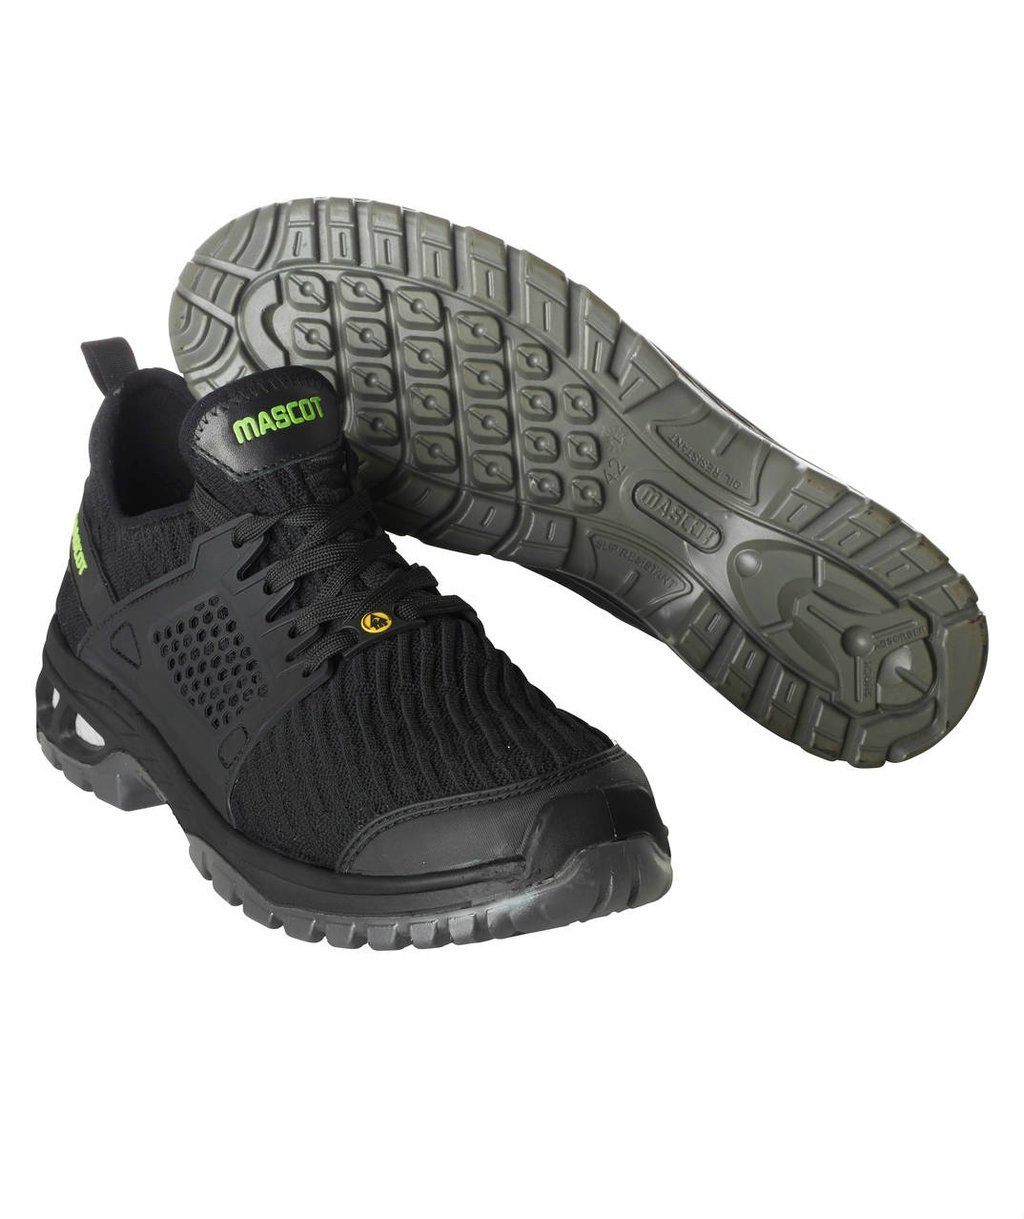 Mascot Energy safety shoes S1P, Black